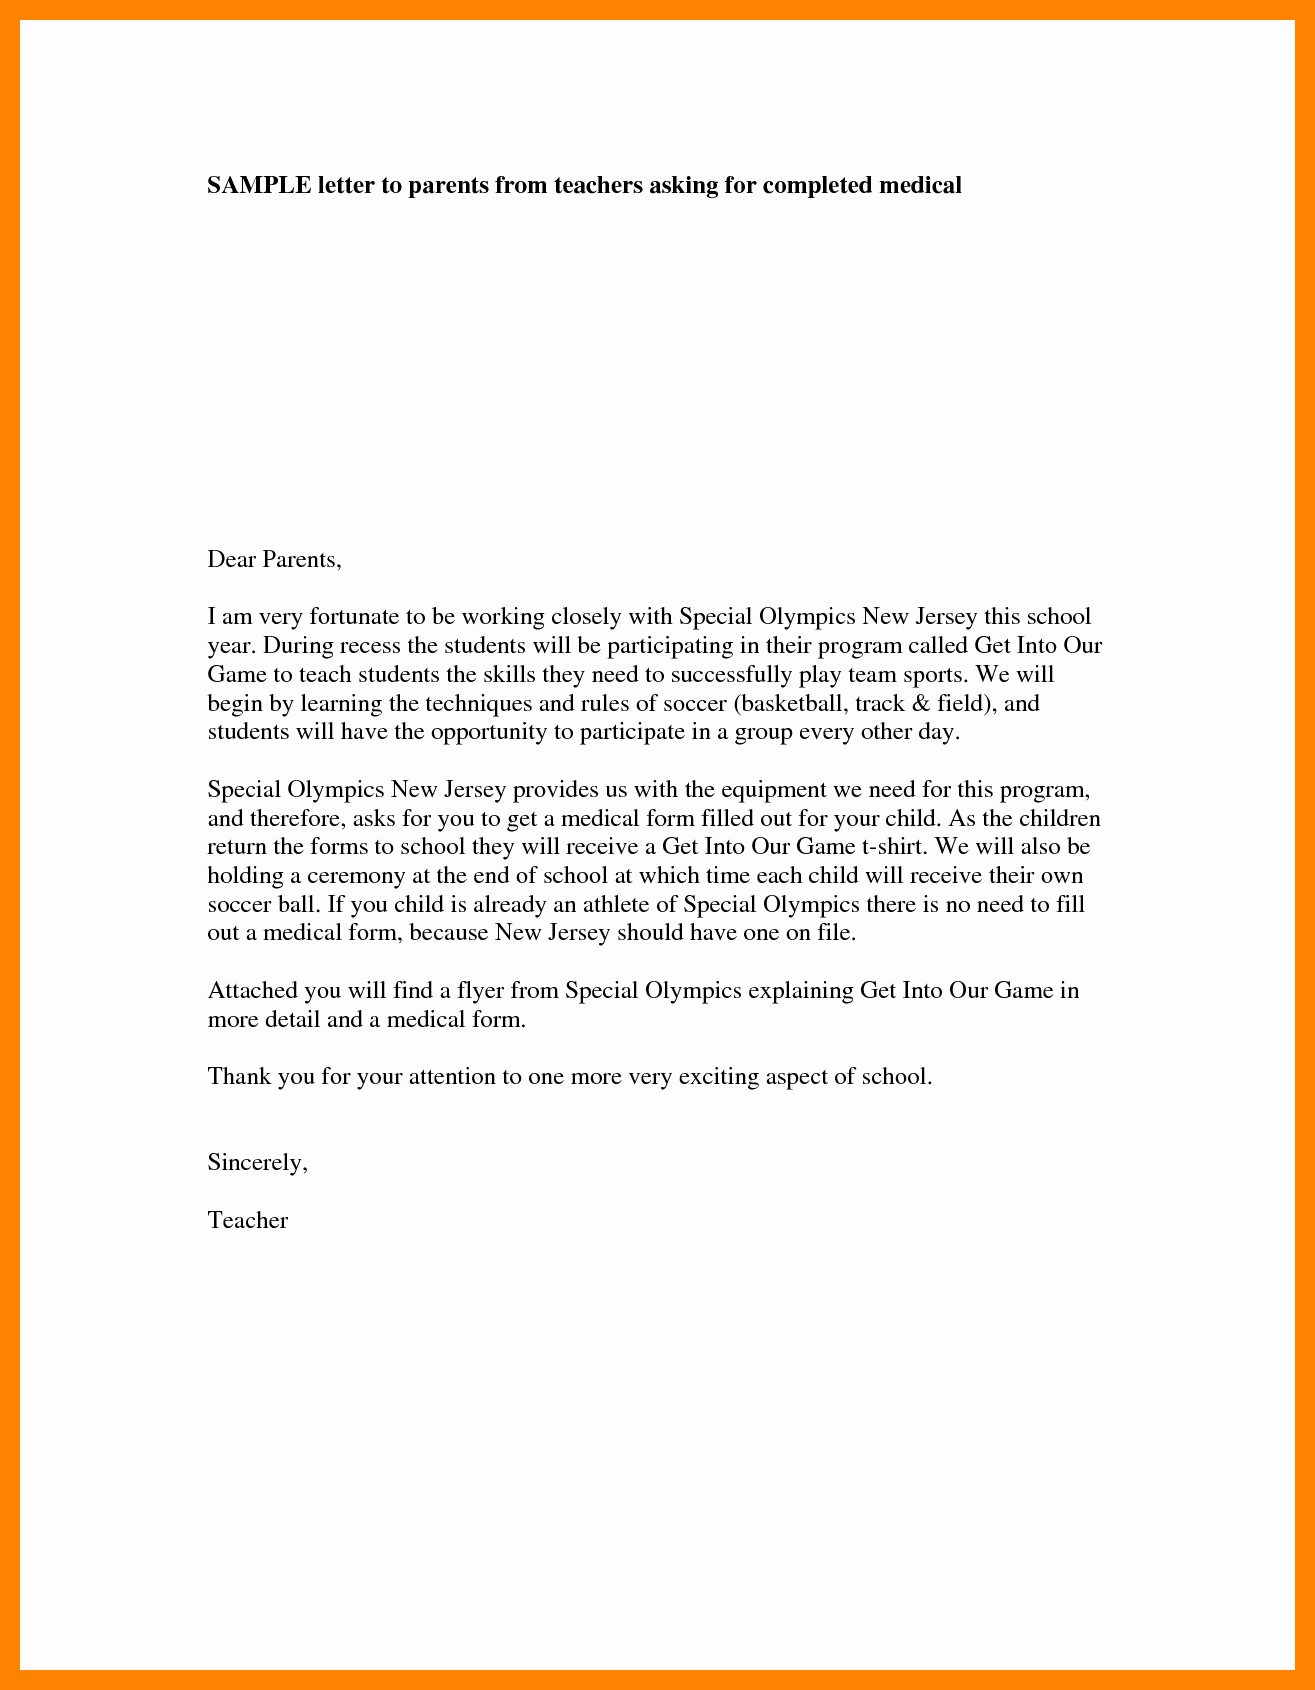 Letters to Parents Template Lovely 4 Teacher Introduction Letter to Parents Template